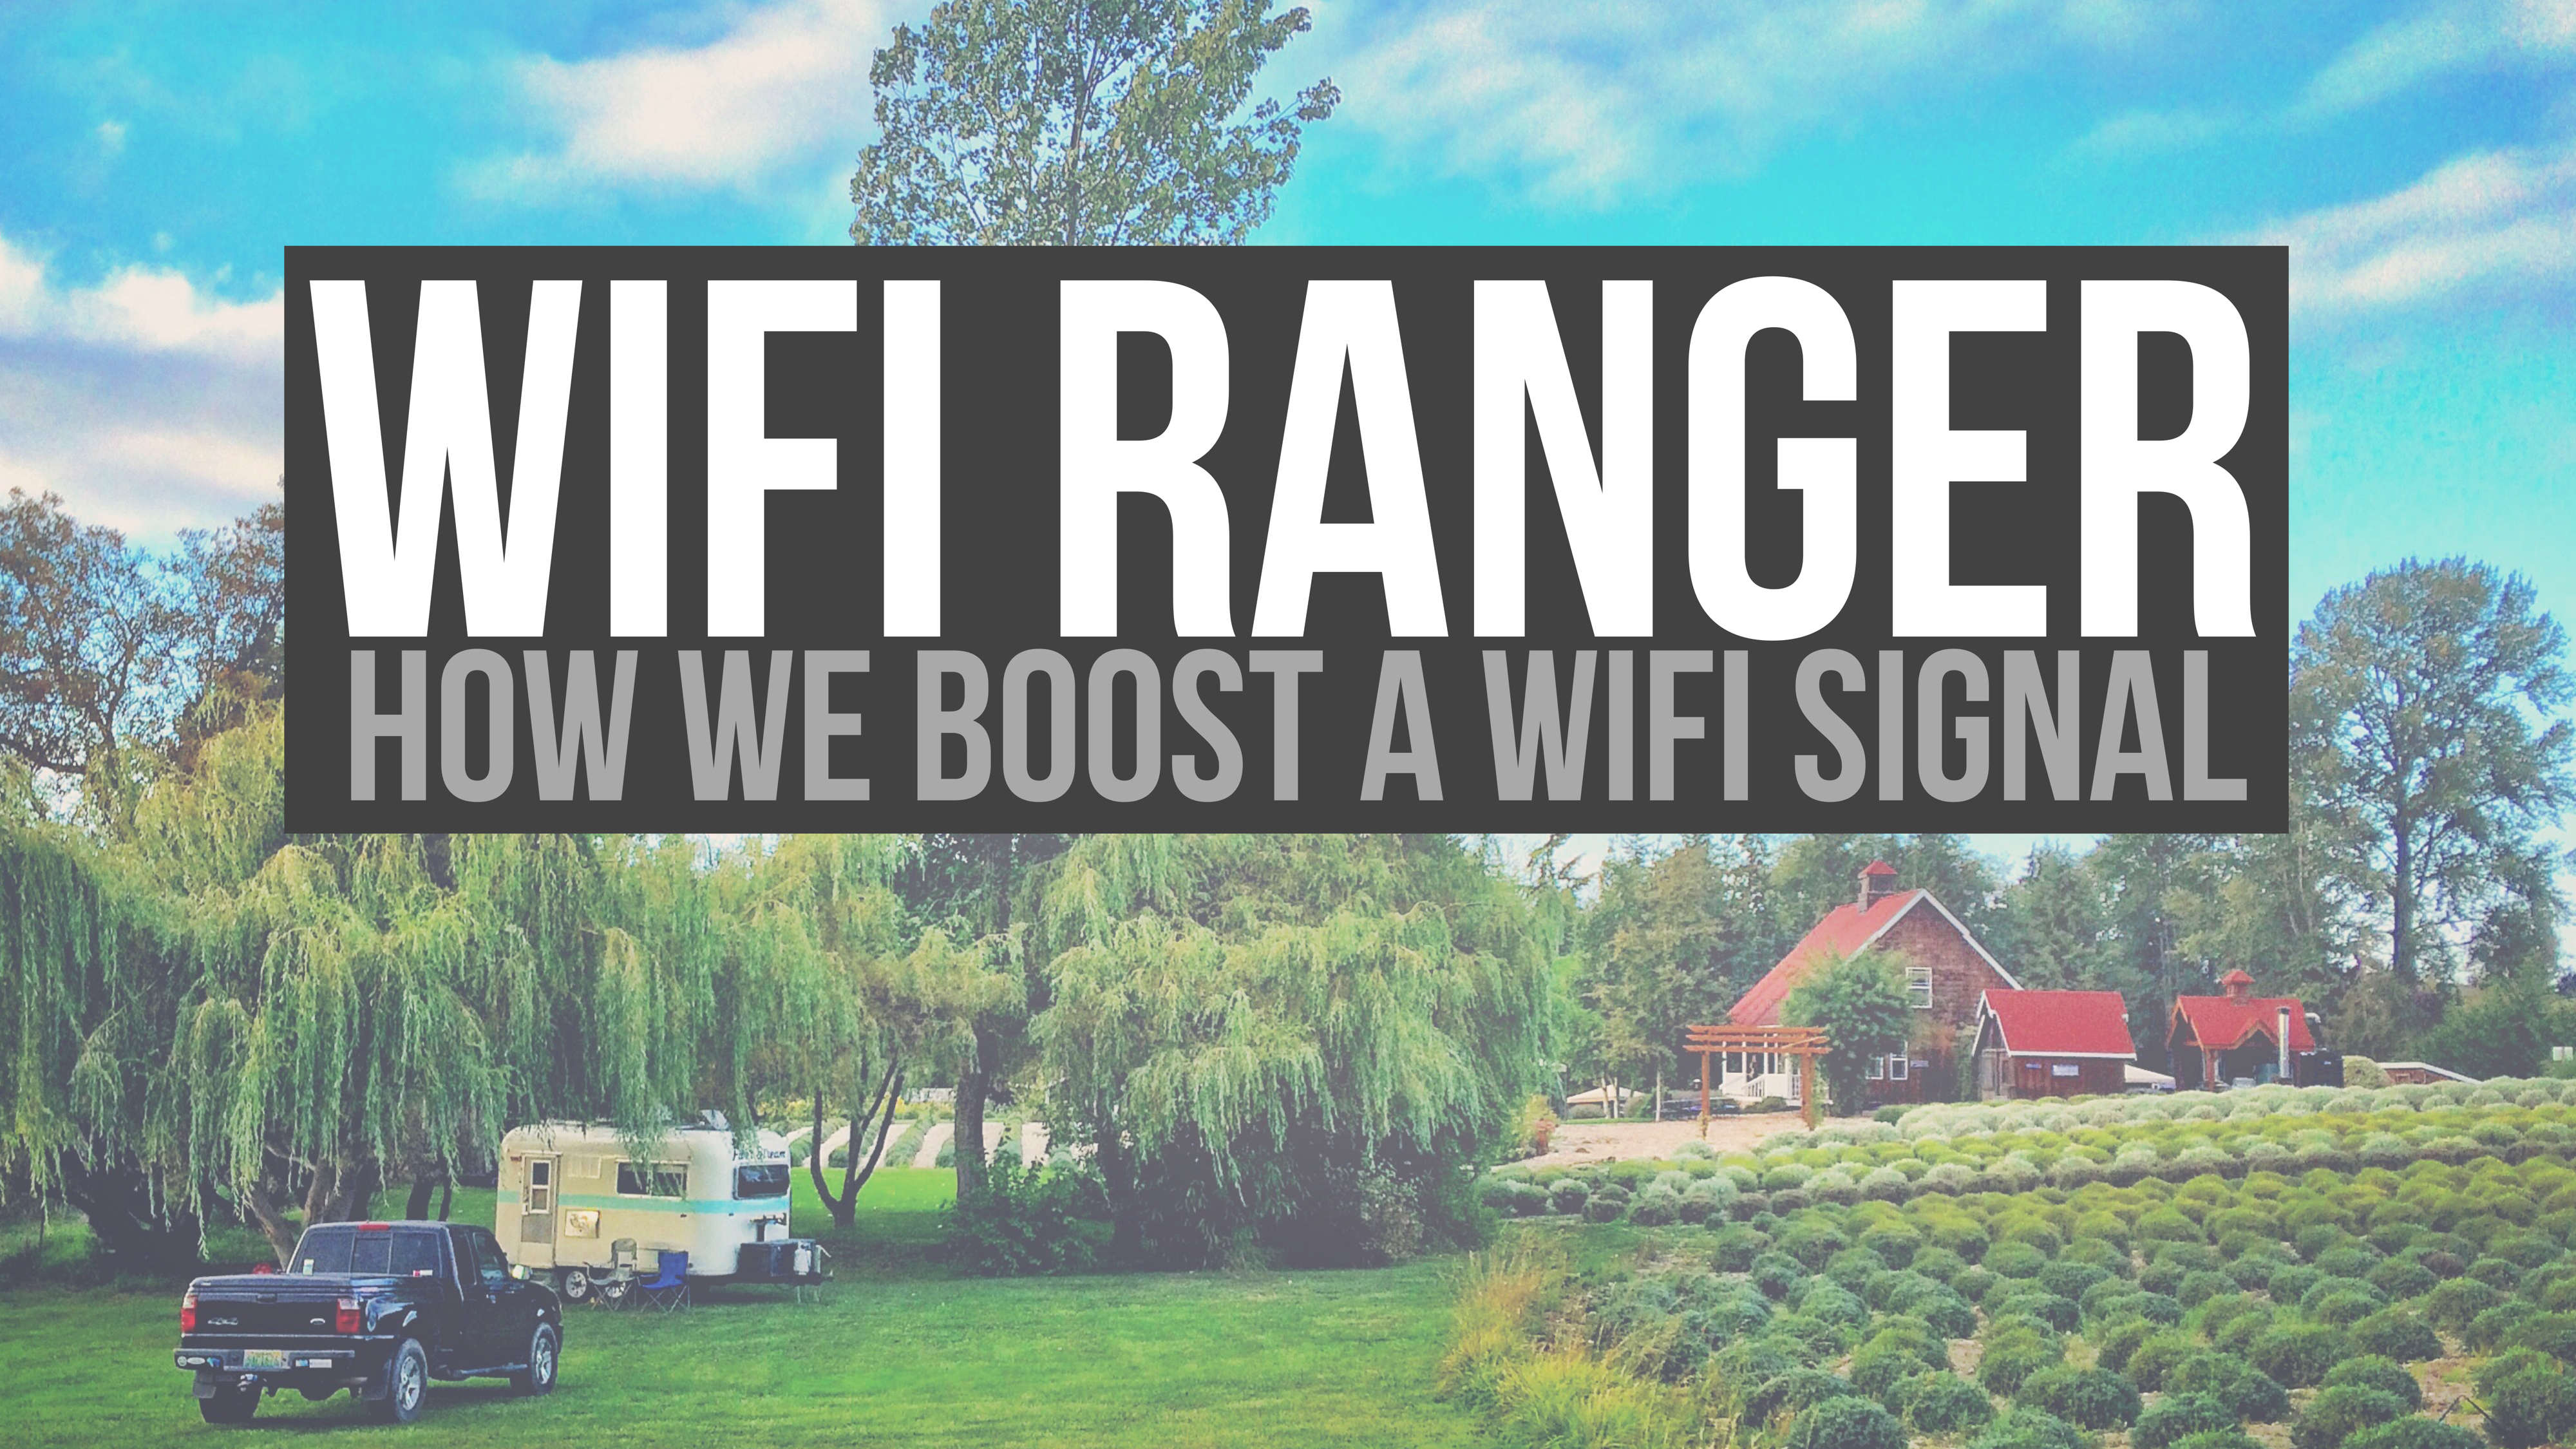 WiFi Ranger Product Review – Boosting a Wifi Signal